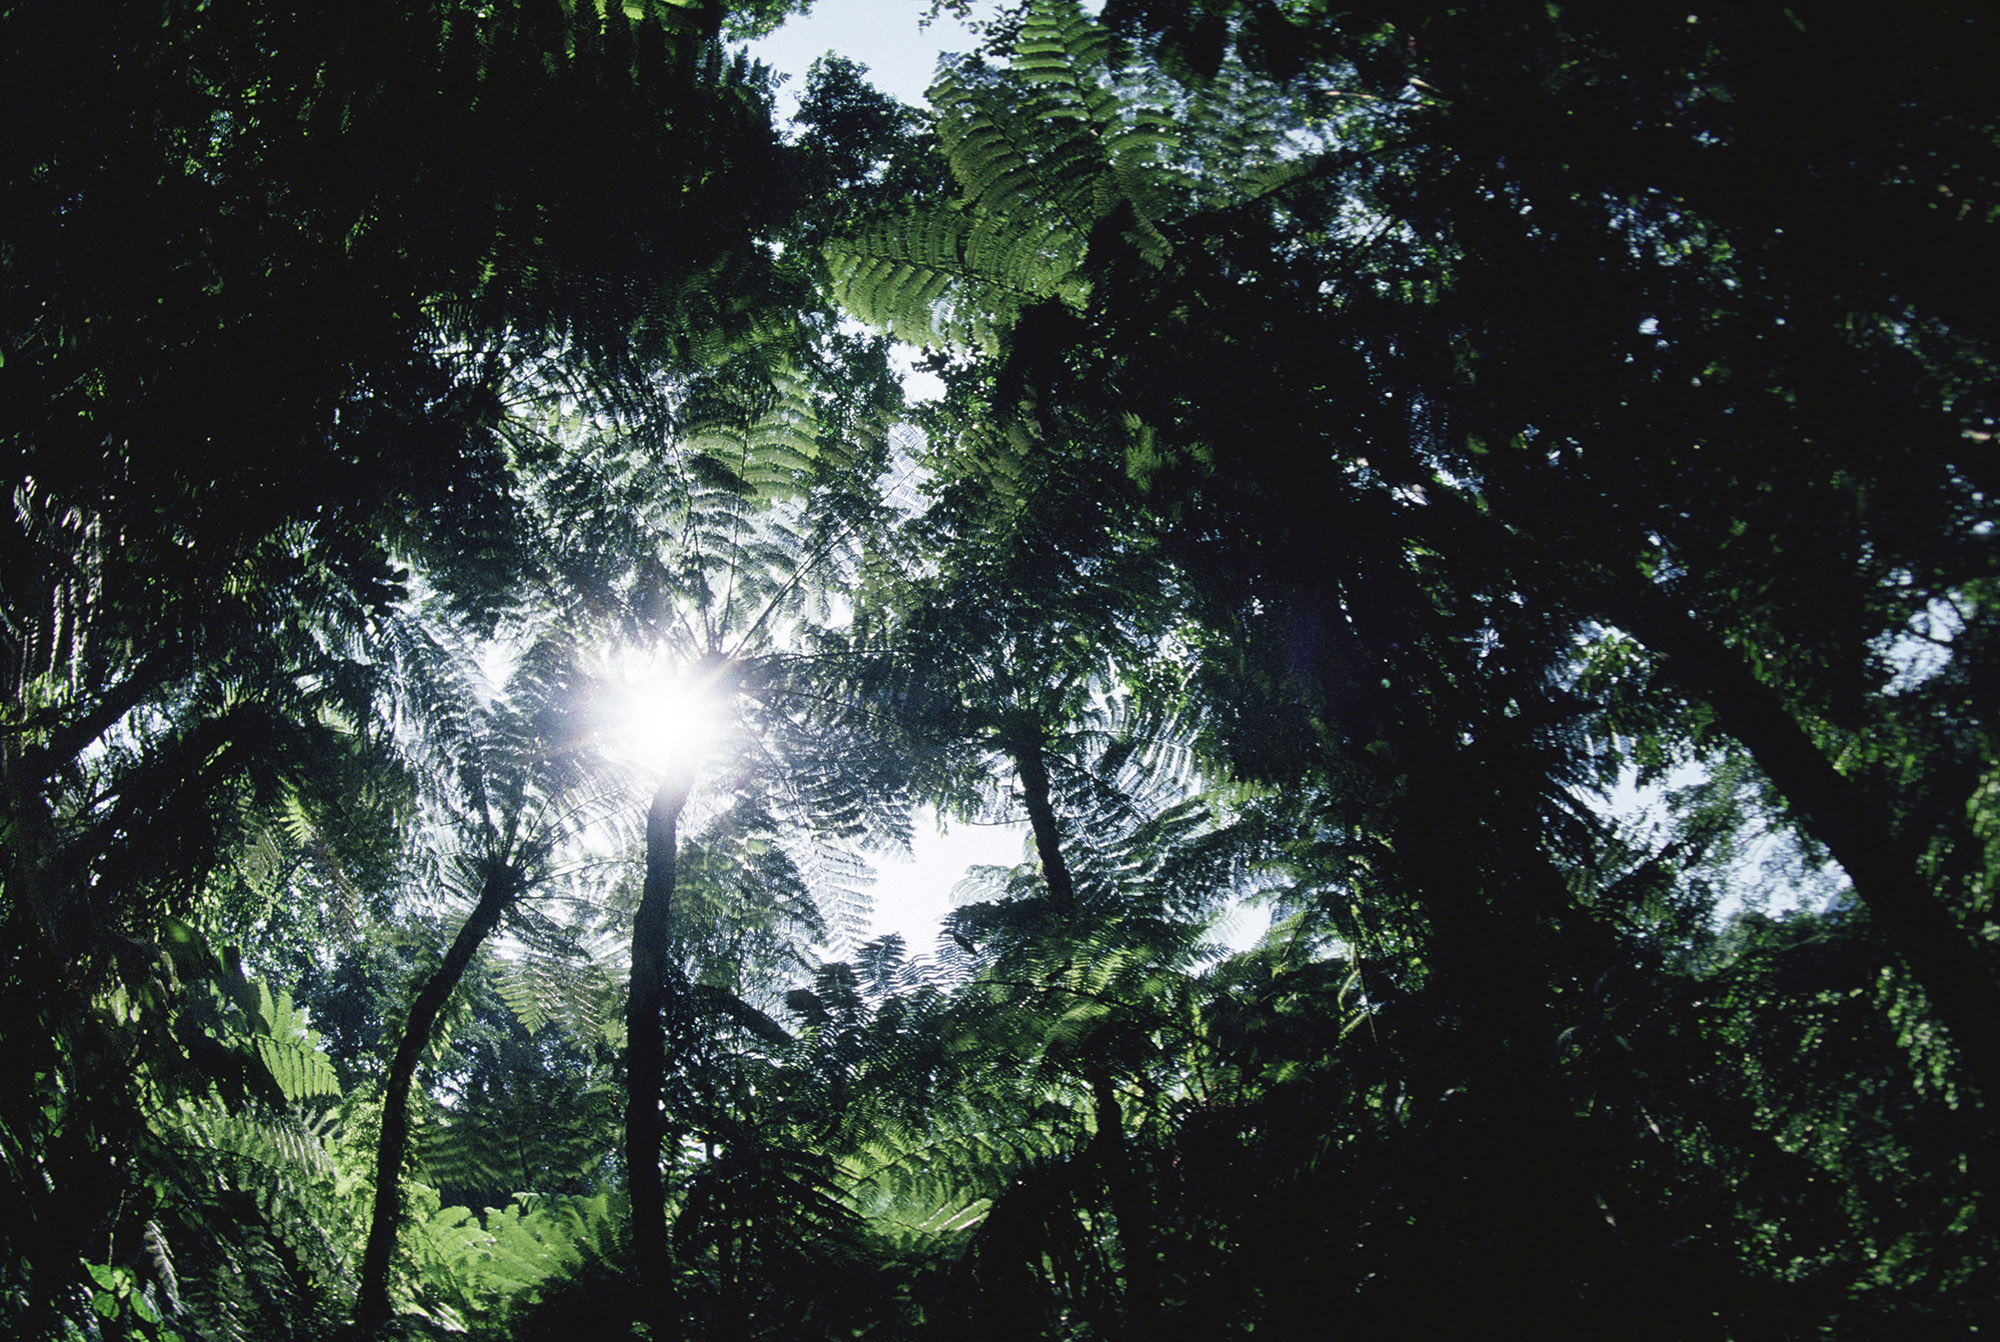 Global plant growth not keeping up with CO2 emissions